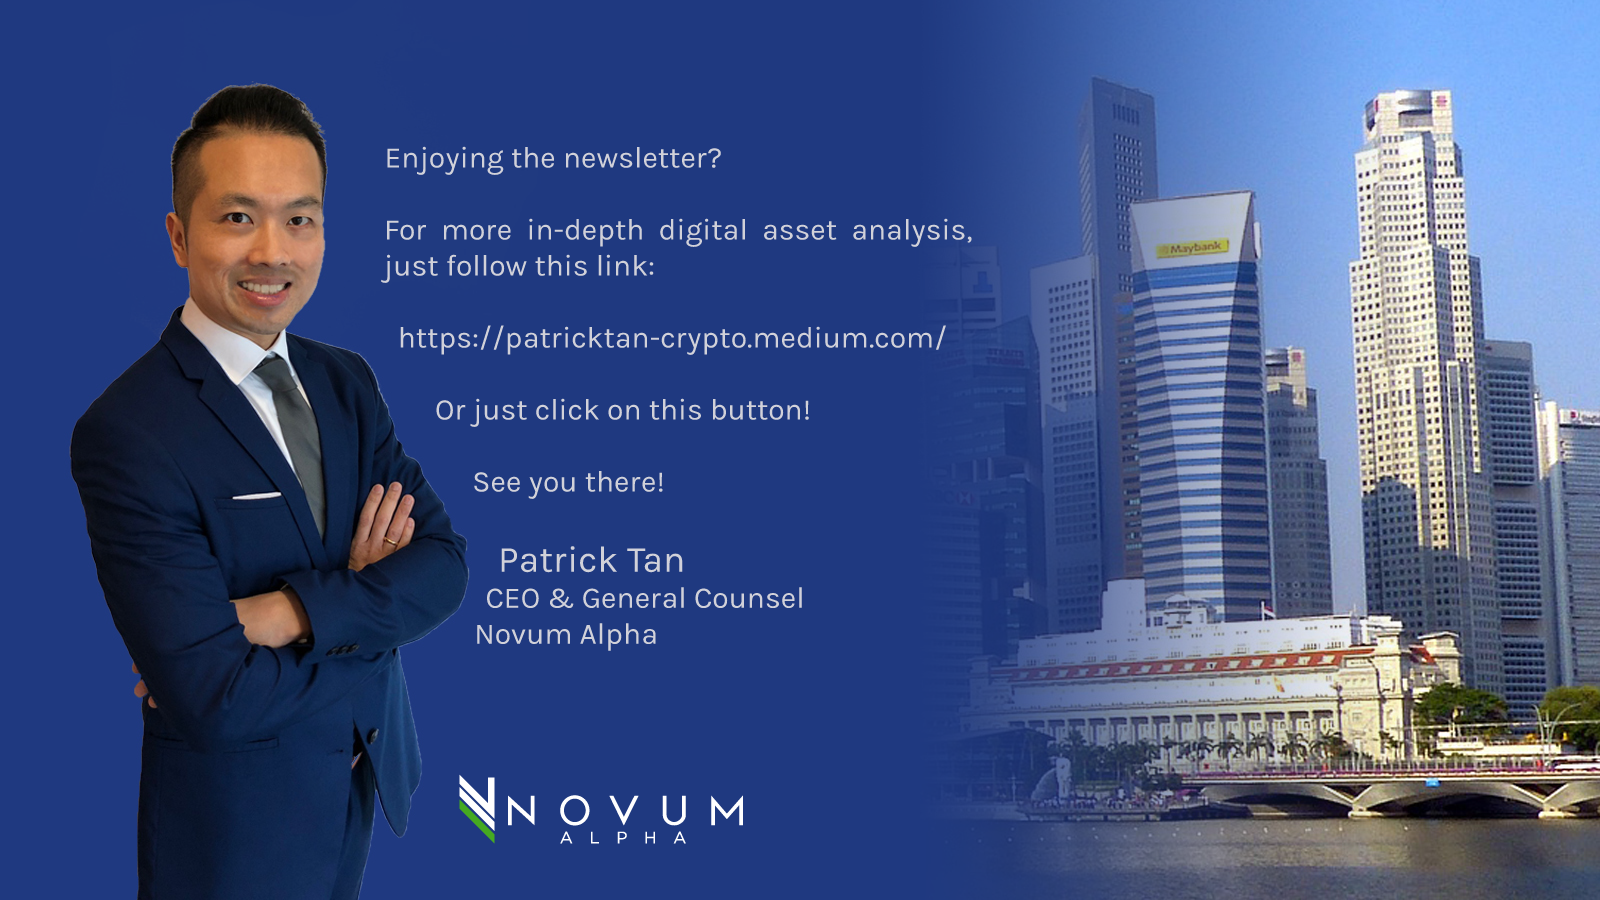 https://patricktan-crypto.medium.com/